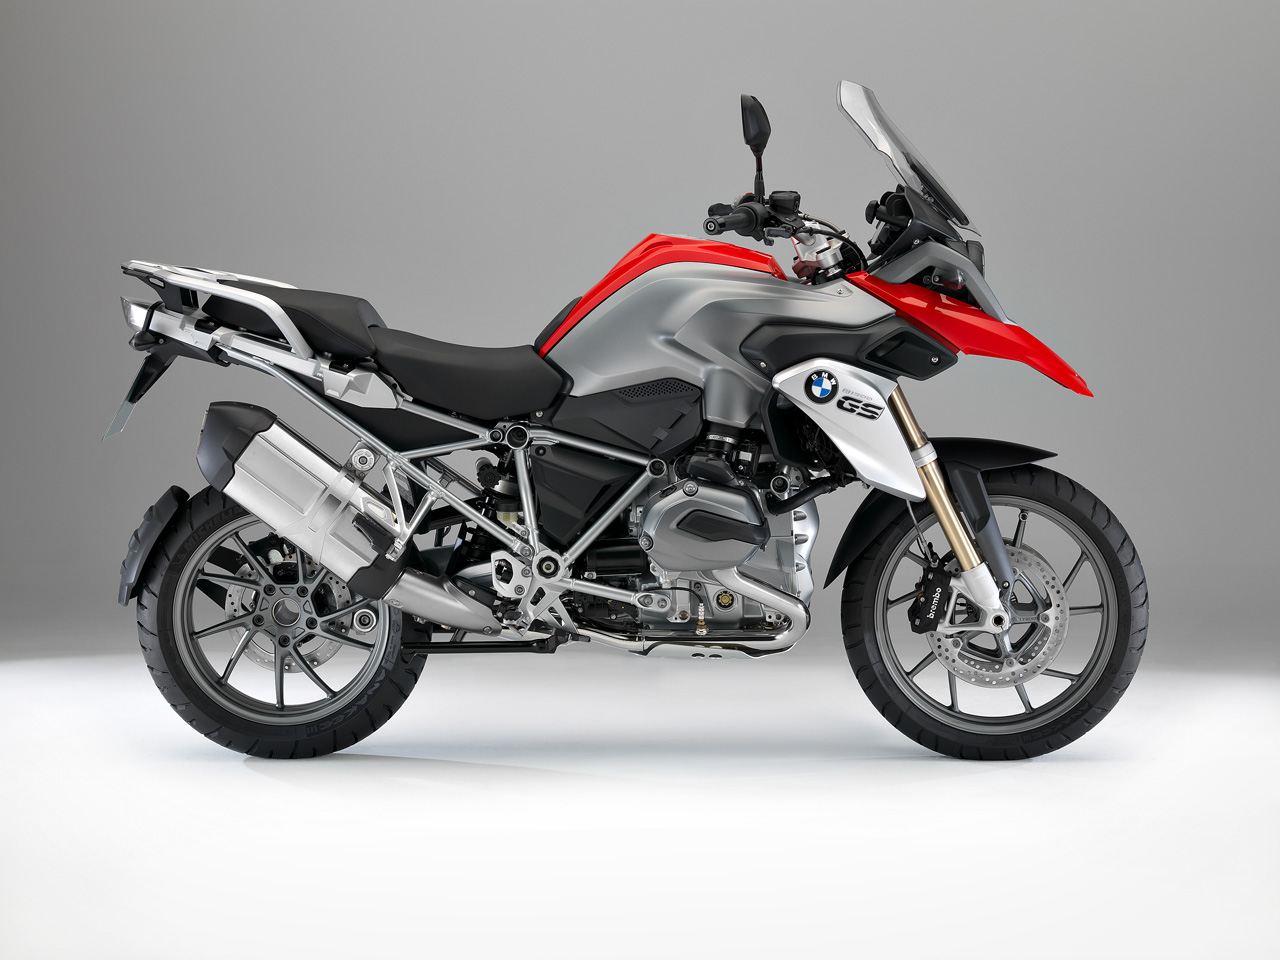 bmw motorrad usa announces official r 1200 gs pricing and. Black Bedroom Furniture Sets. Home Design Ideas